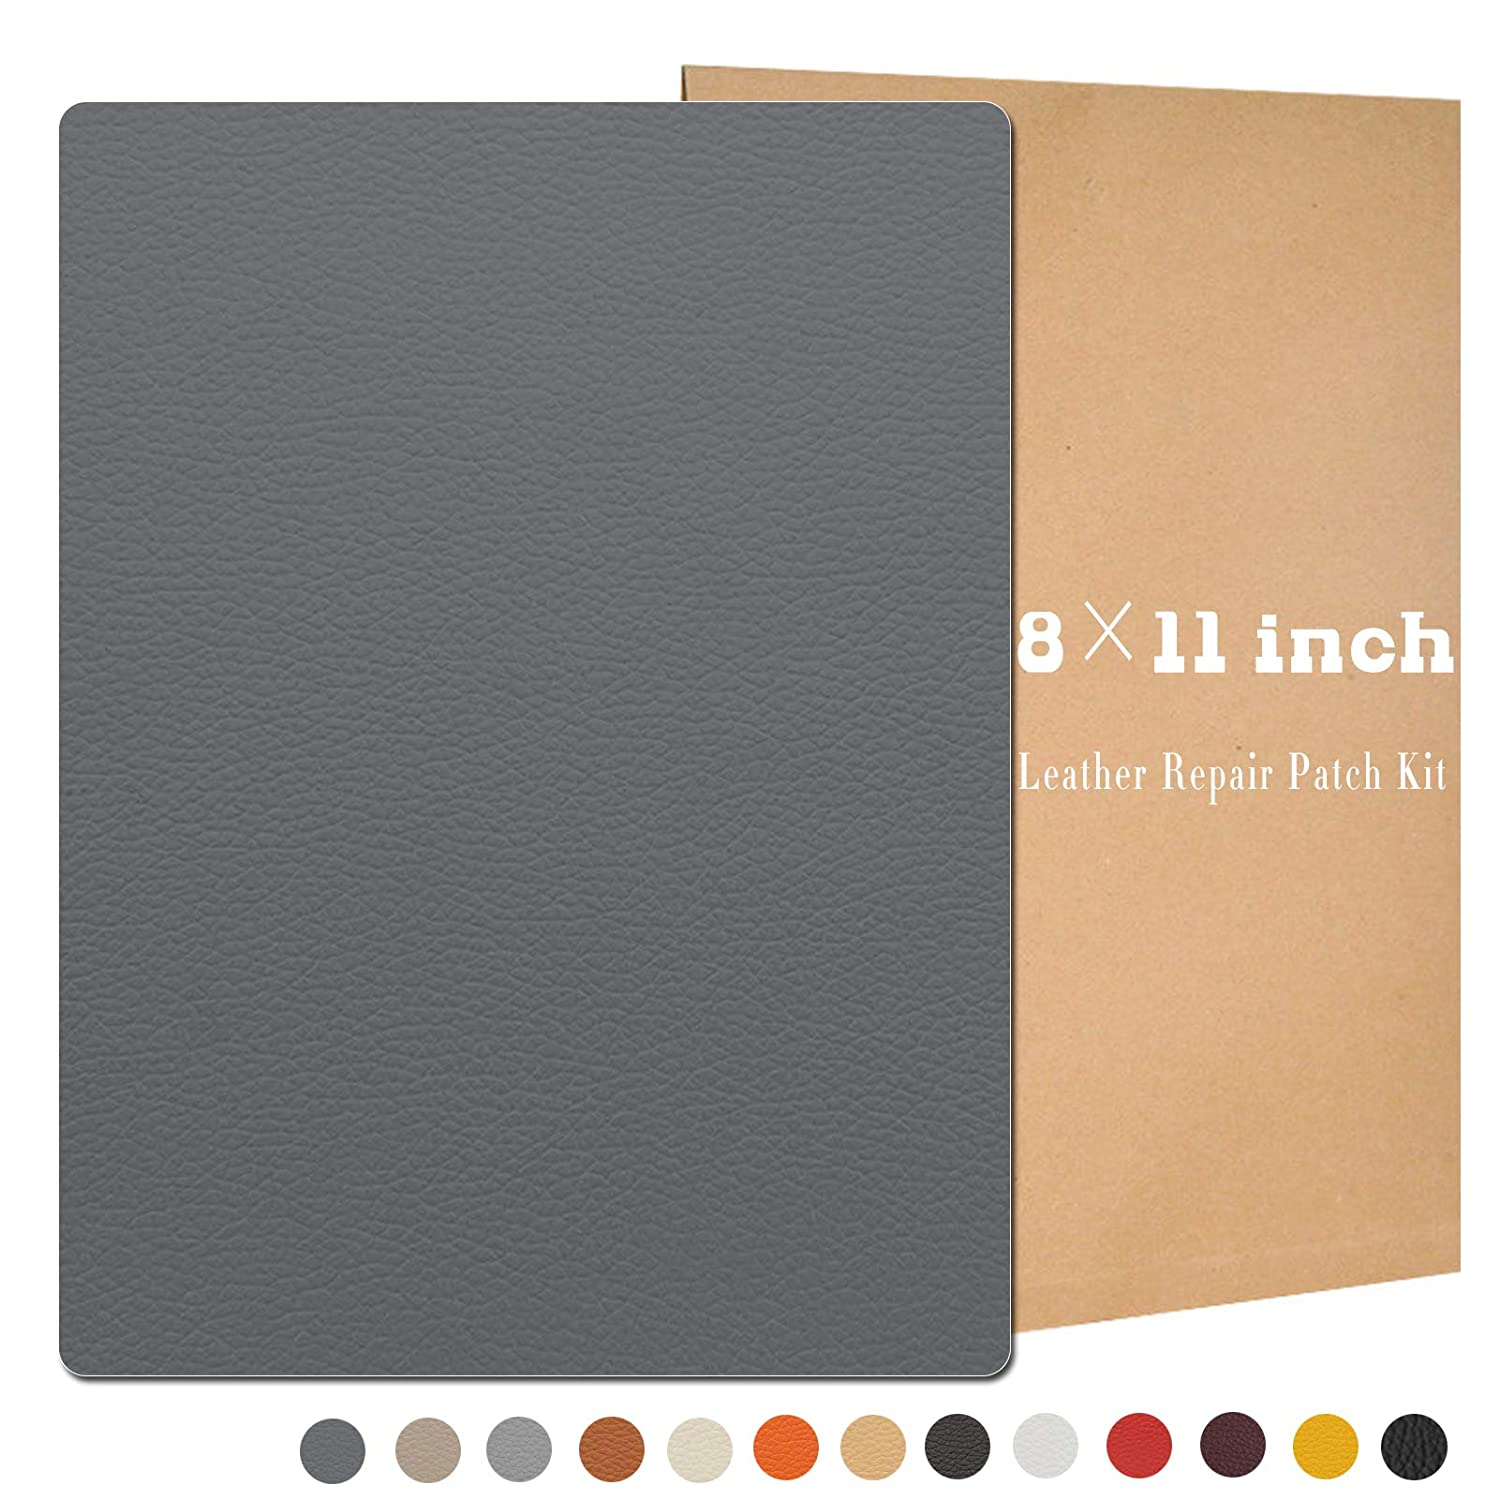 4 Pcs 8 × 11inch Leather Repair Patch Kit, Self-Adhesive Sticker for Leather and Vinyl Repair, First Aid Kit for Furniture, Sofas, Couch, Car Seat, Belts, Handbags, Jackets 13 Colors Available (Gray)